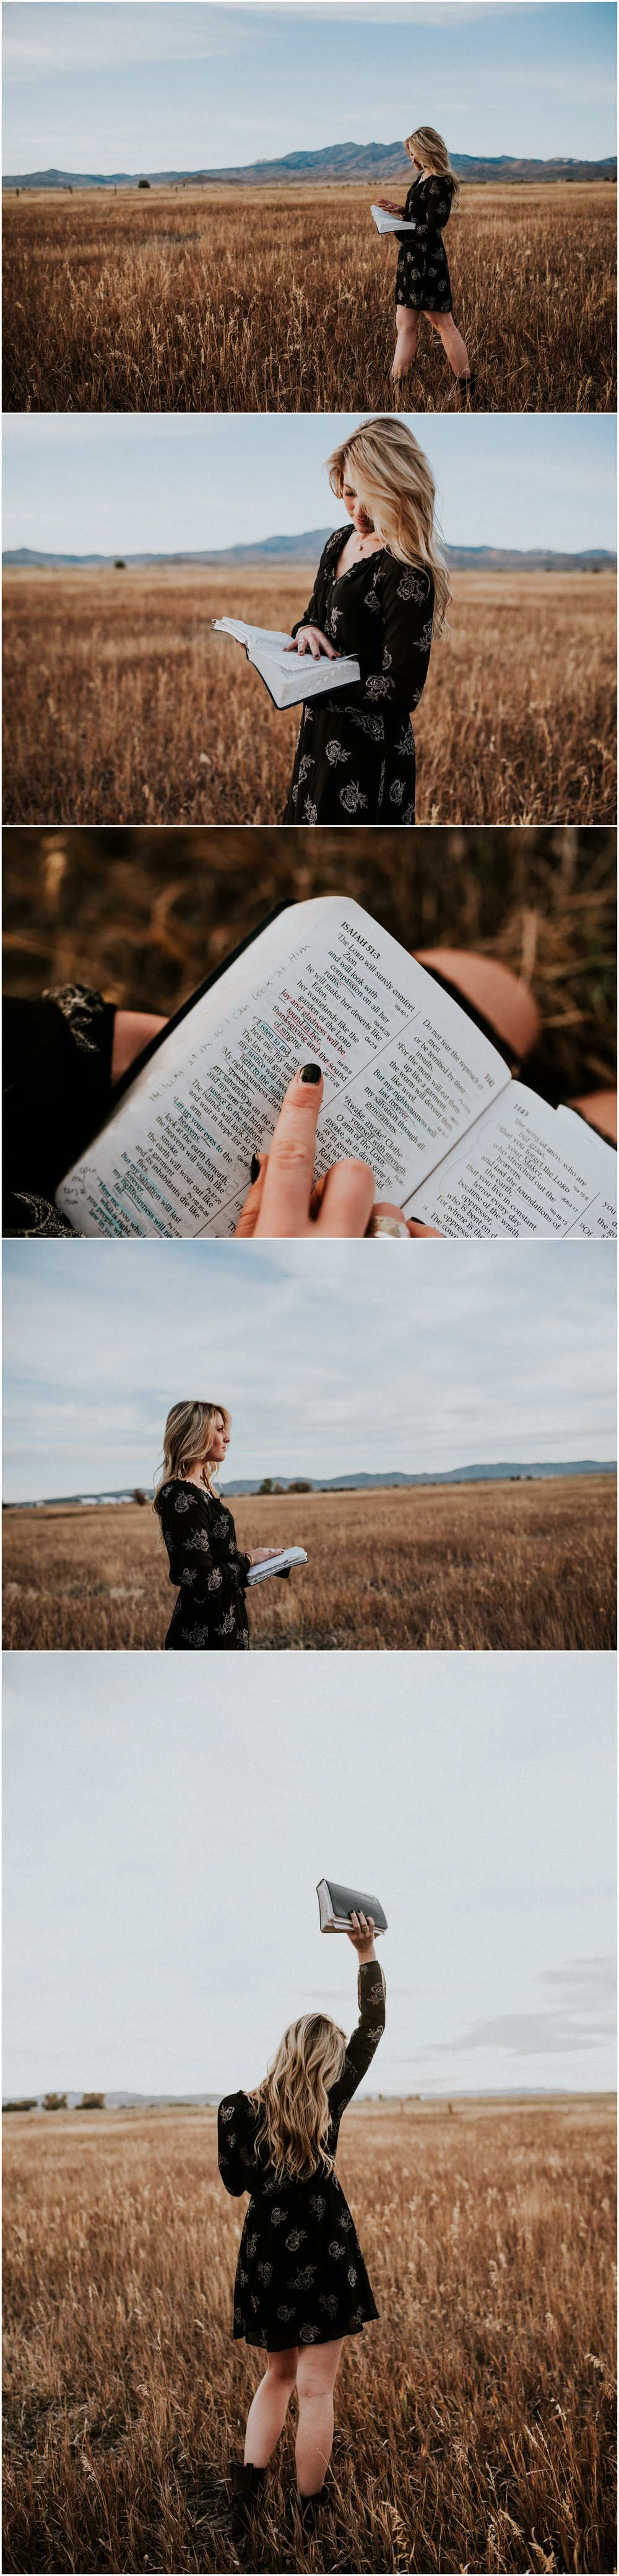 Makayla Madden Photography Boise Senior Photographer Idaho Fairfield Wheat Field Floppy Hat Senior Girl Outfit Ideas and Inspiration Miriam Worship Bible